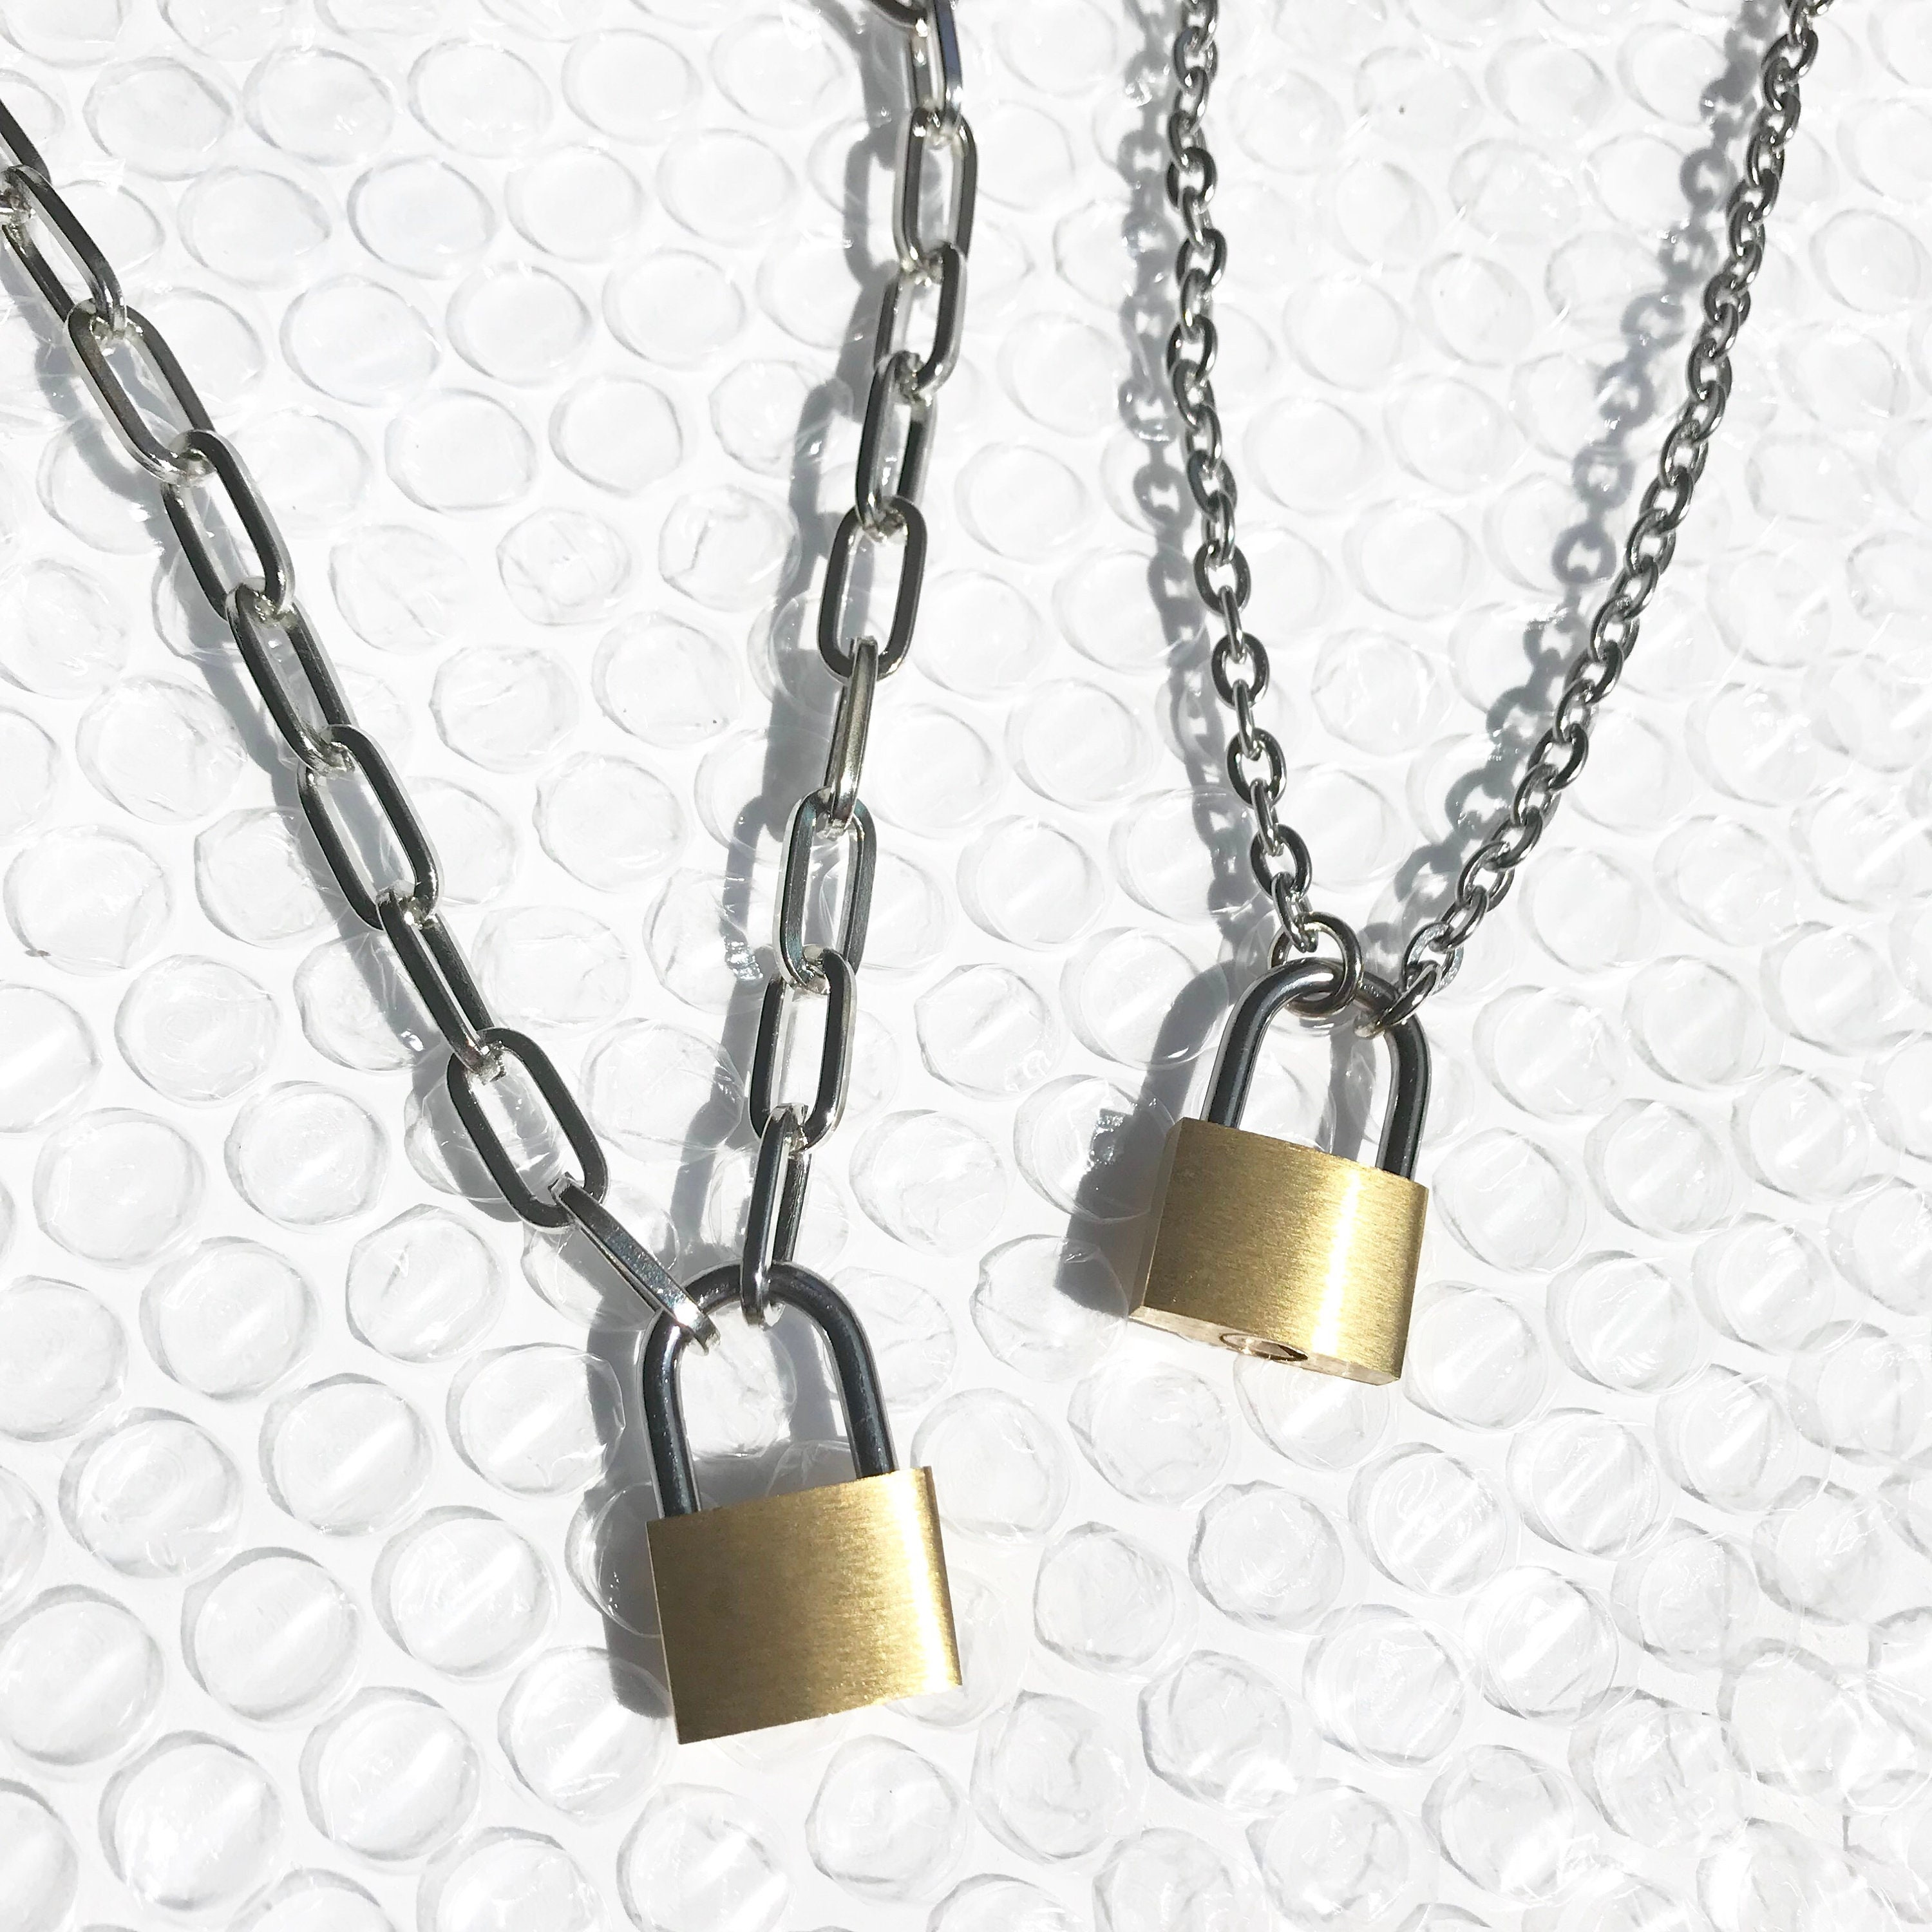 Padlock Necklace Chain Link With Functioning Lock And Key